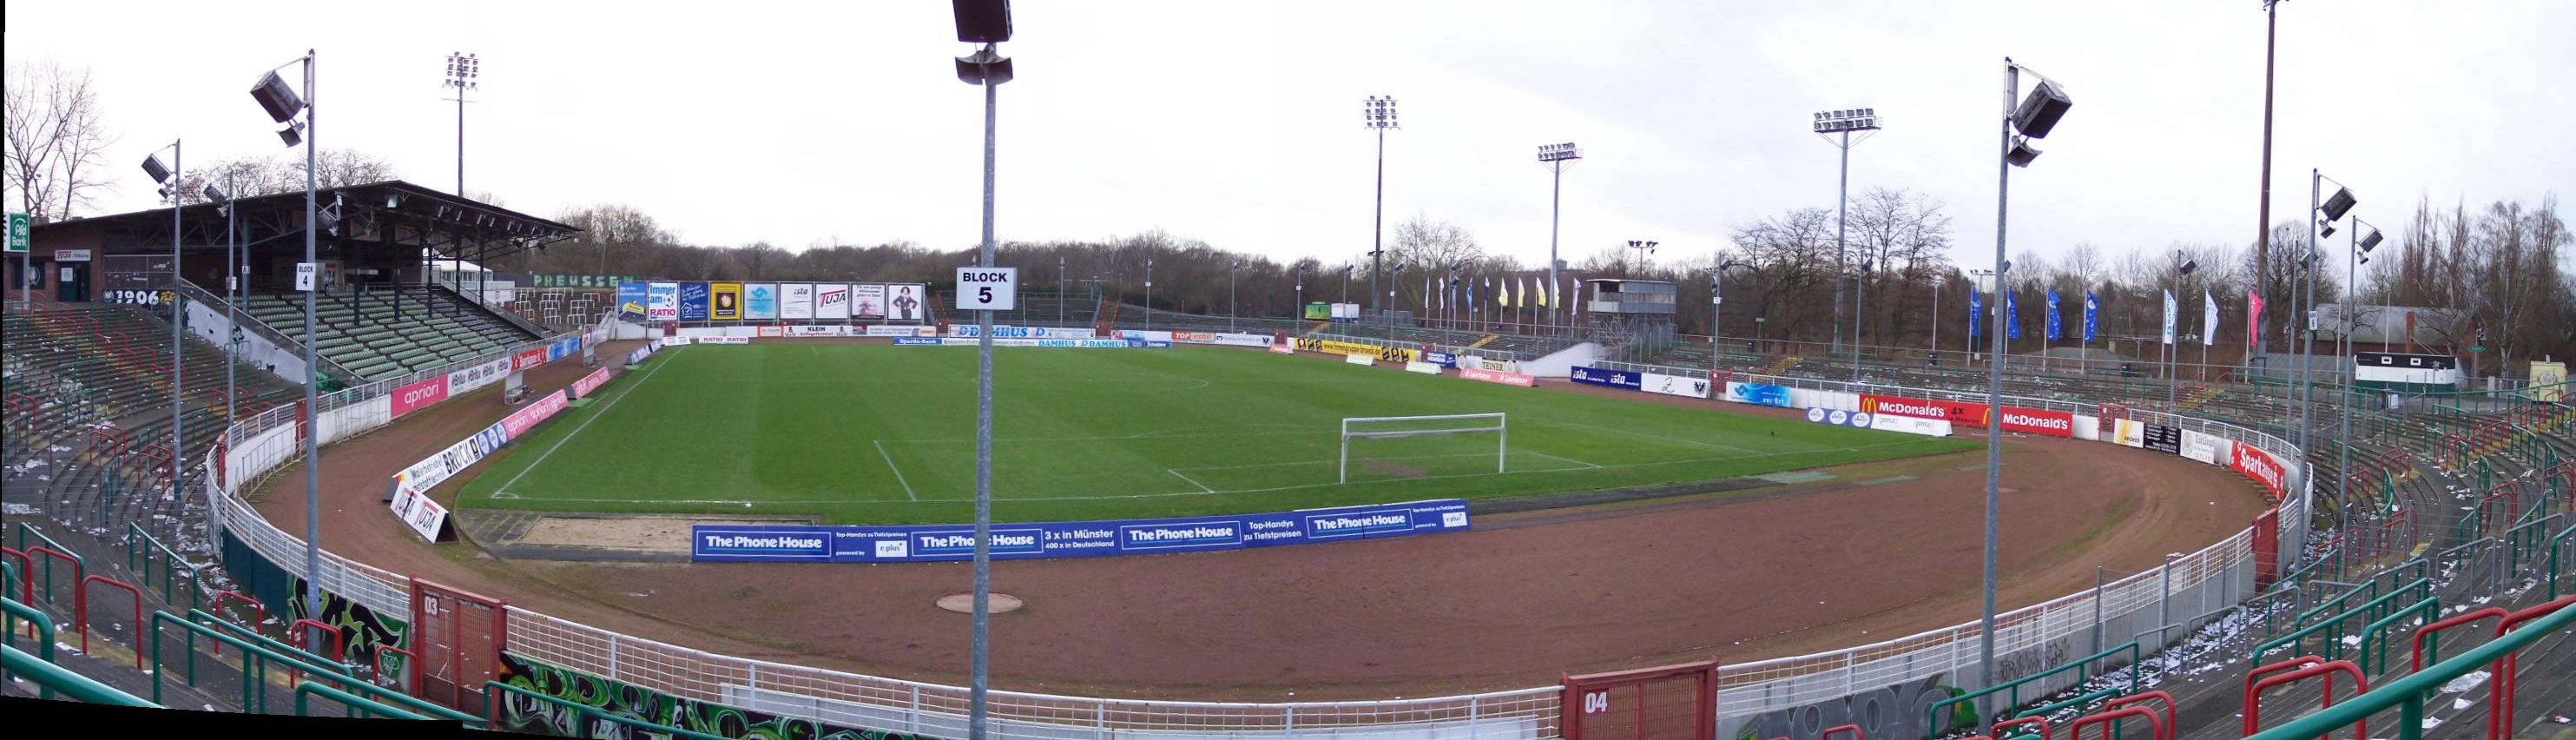 Panorama vom Innern des Stadions